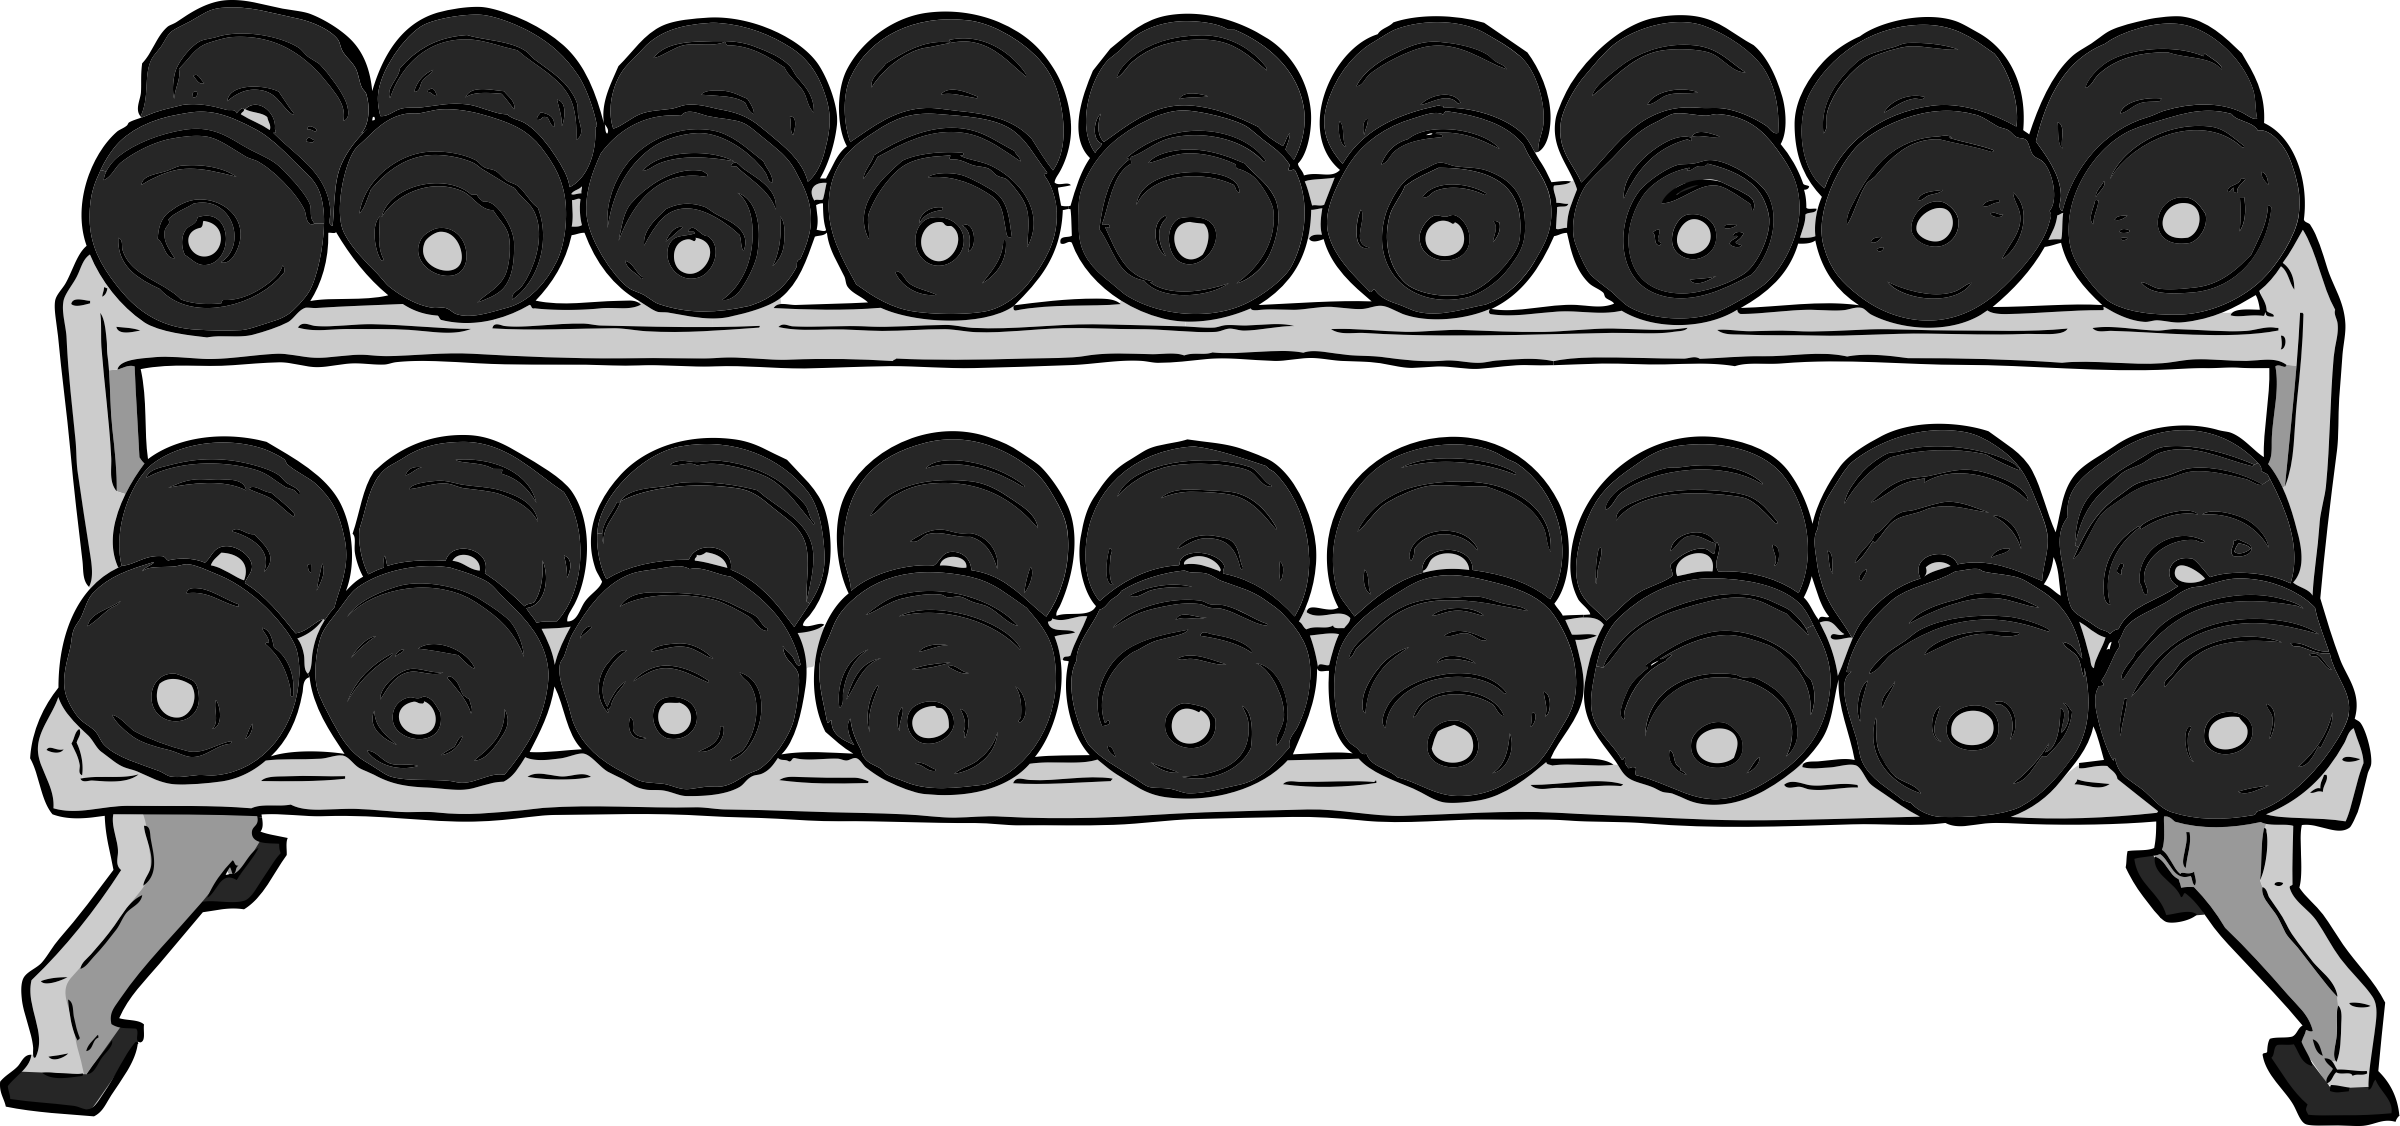 Weights svg animated. Dumbbells clipart clip arts